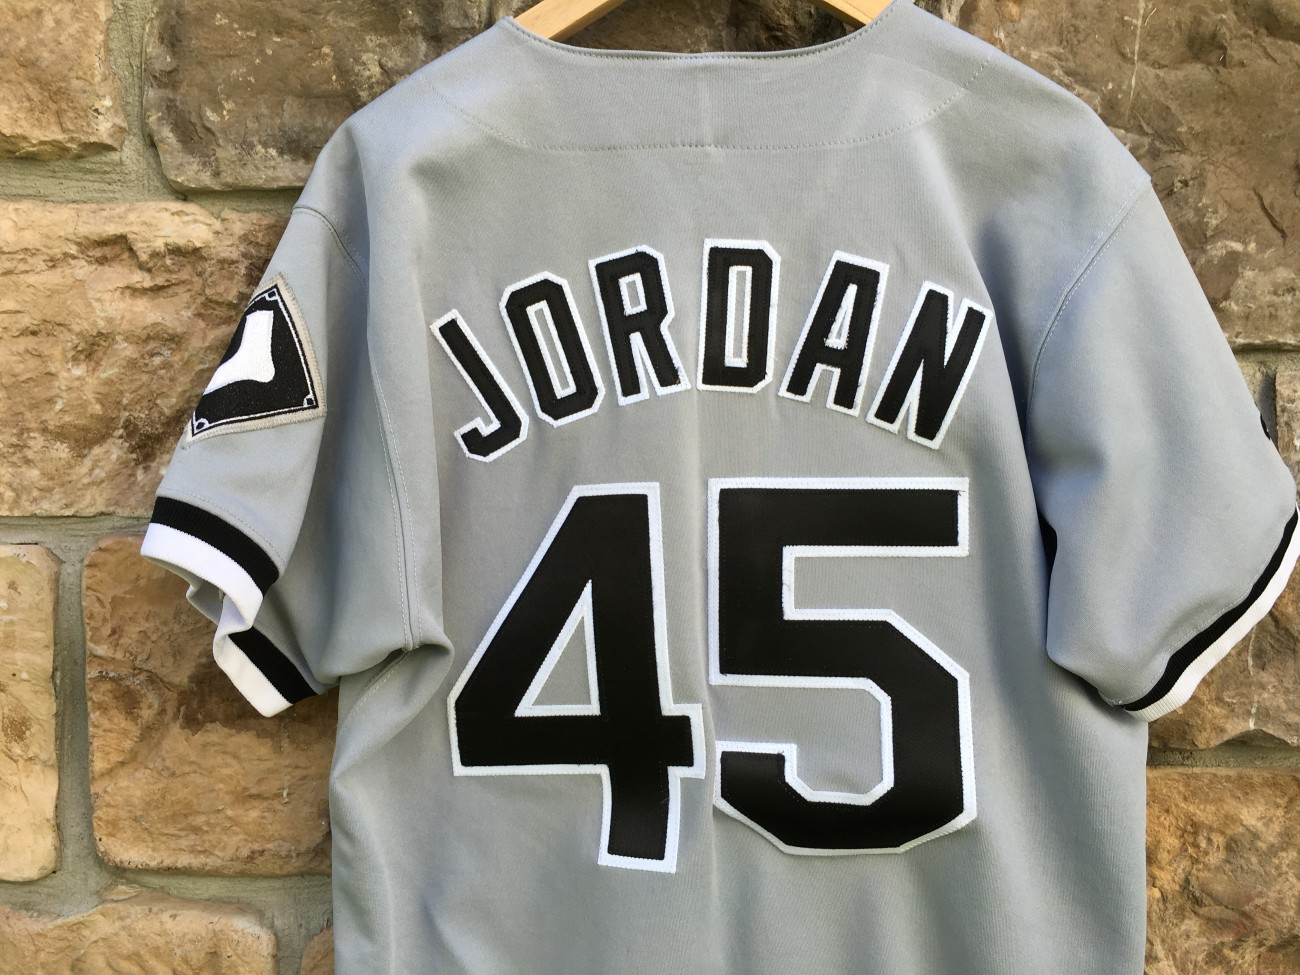 dd241676412 1994 Chicago White Sox Michael Jordan Authentic Russell MLB Grey ...